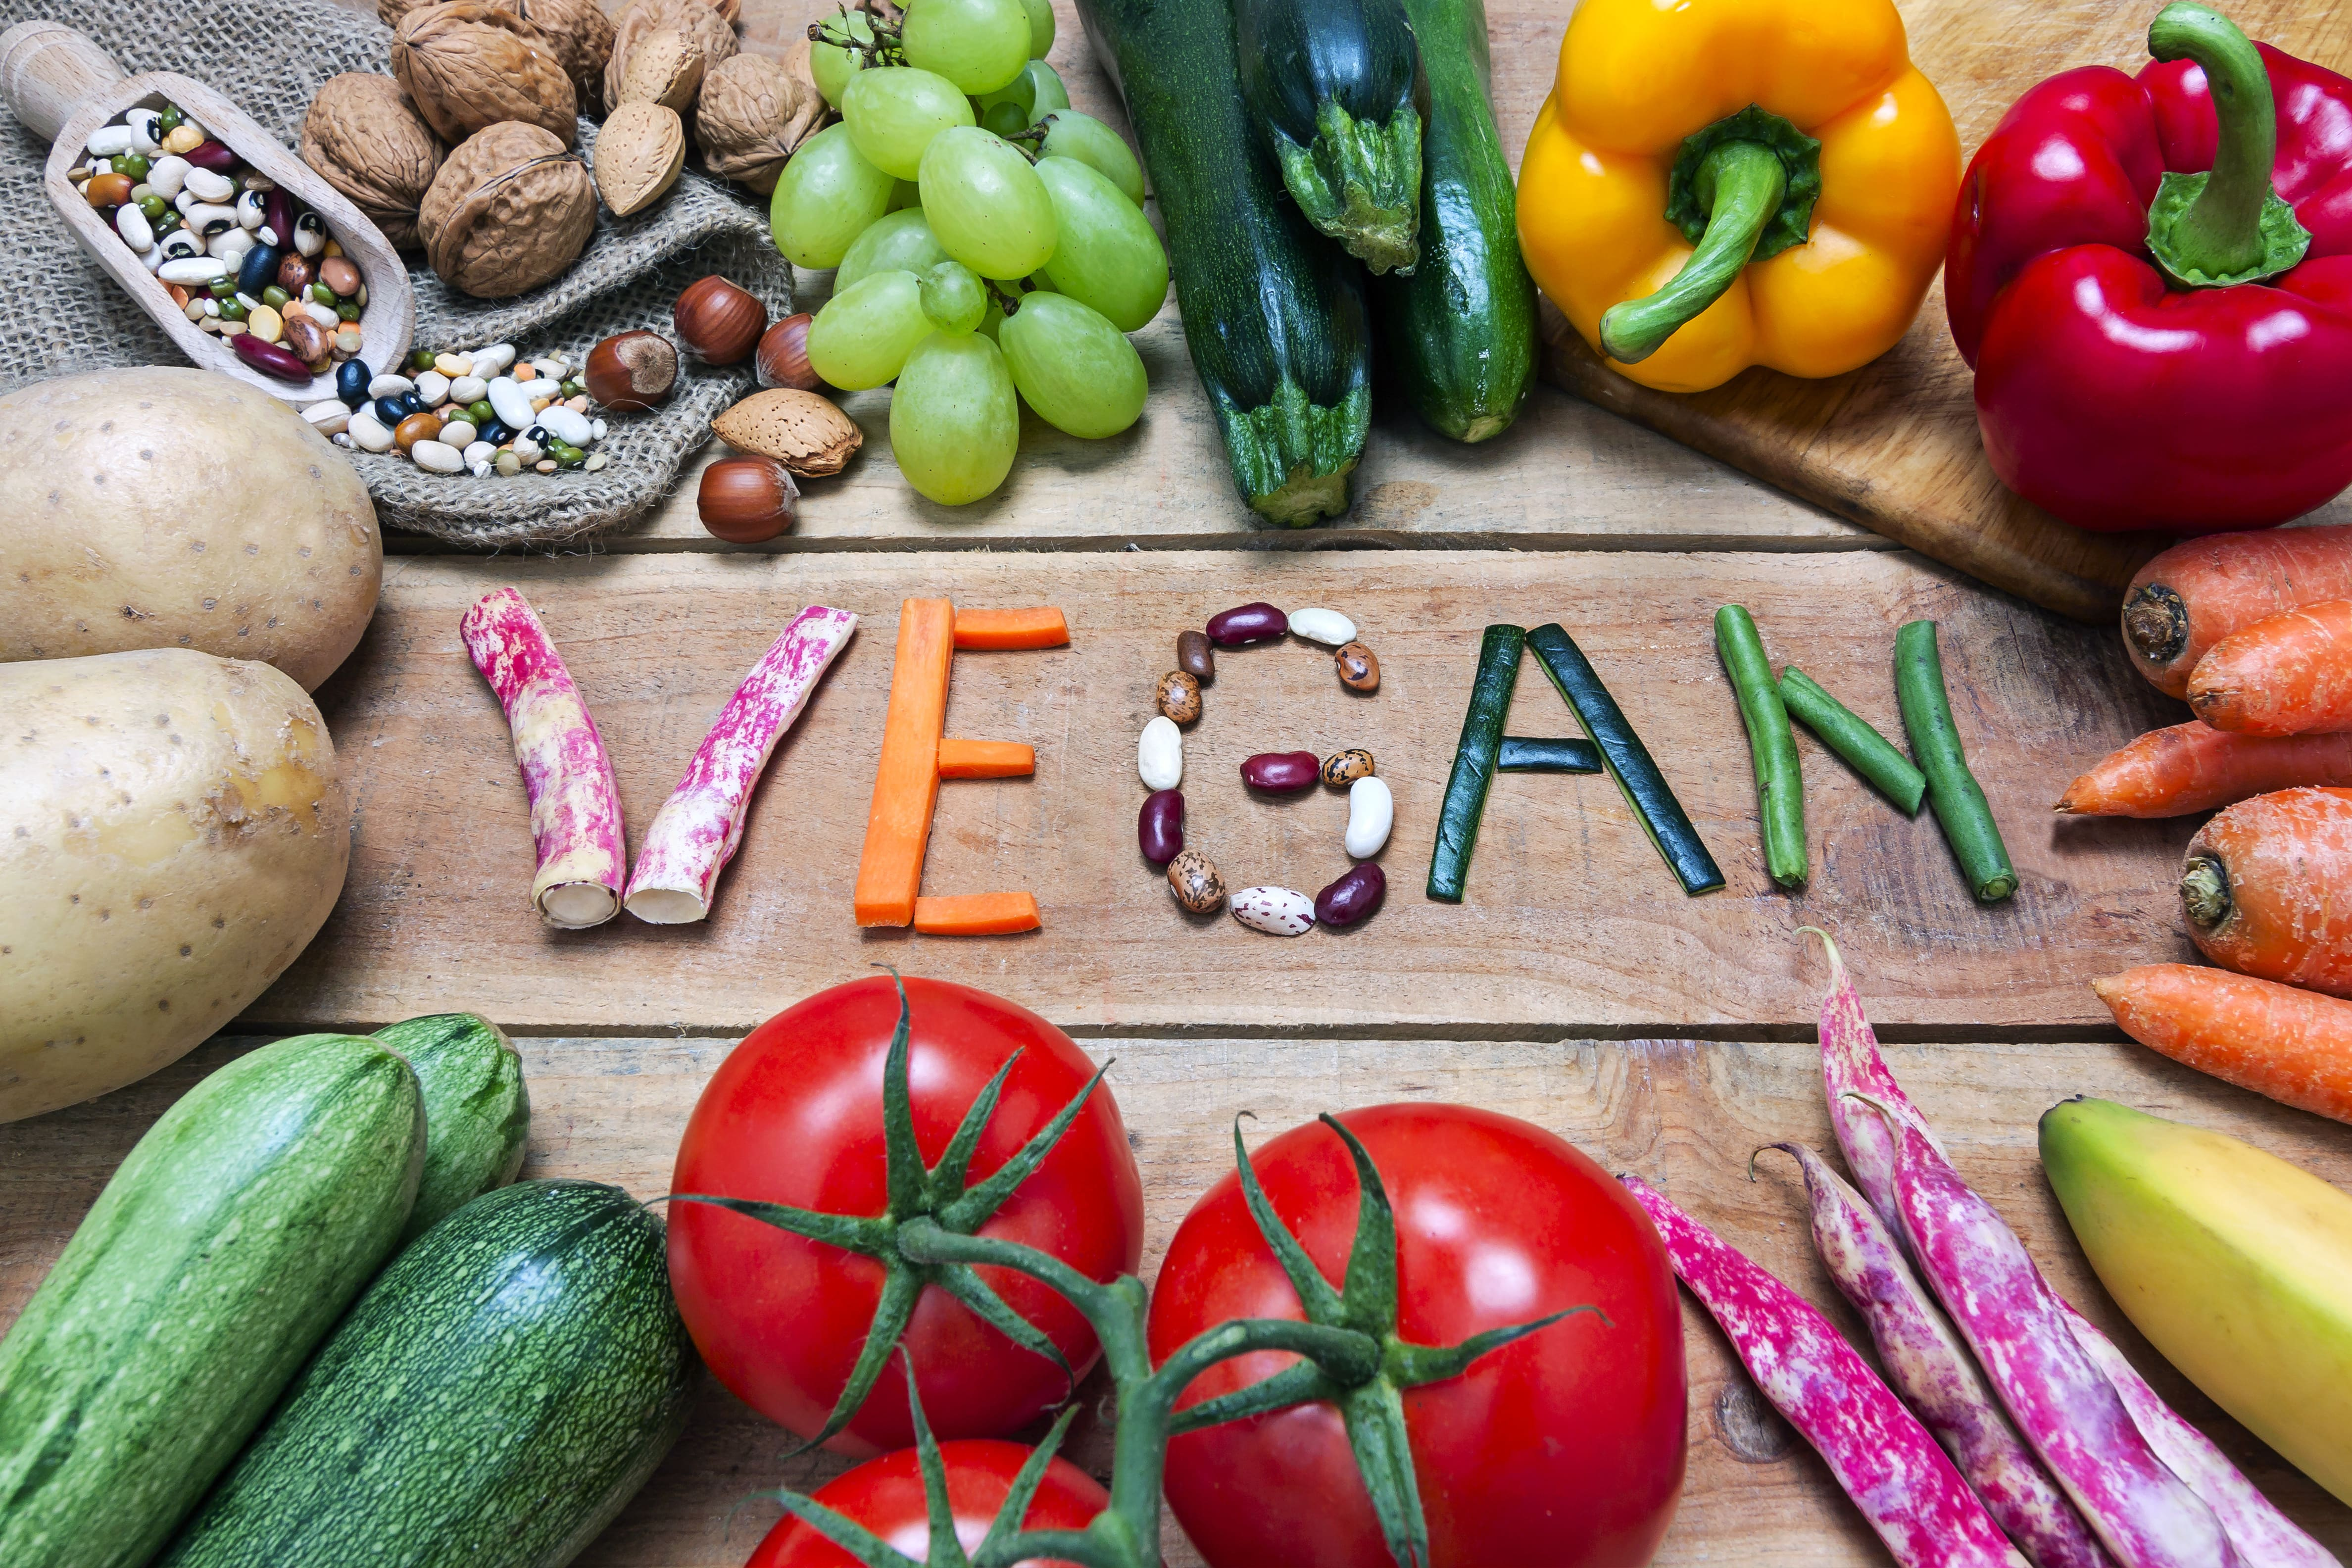 10 Things to Know Before Going Vegan